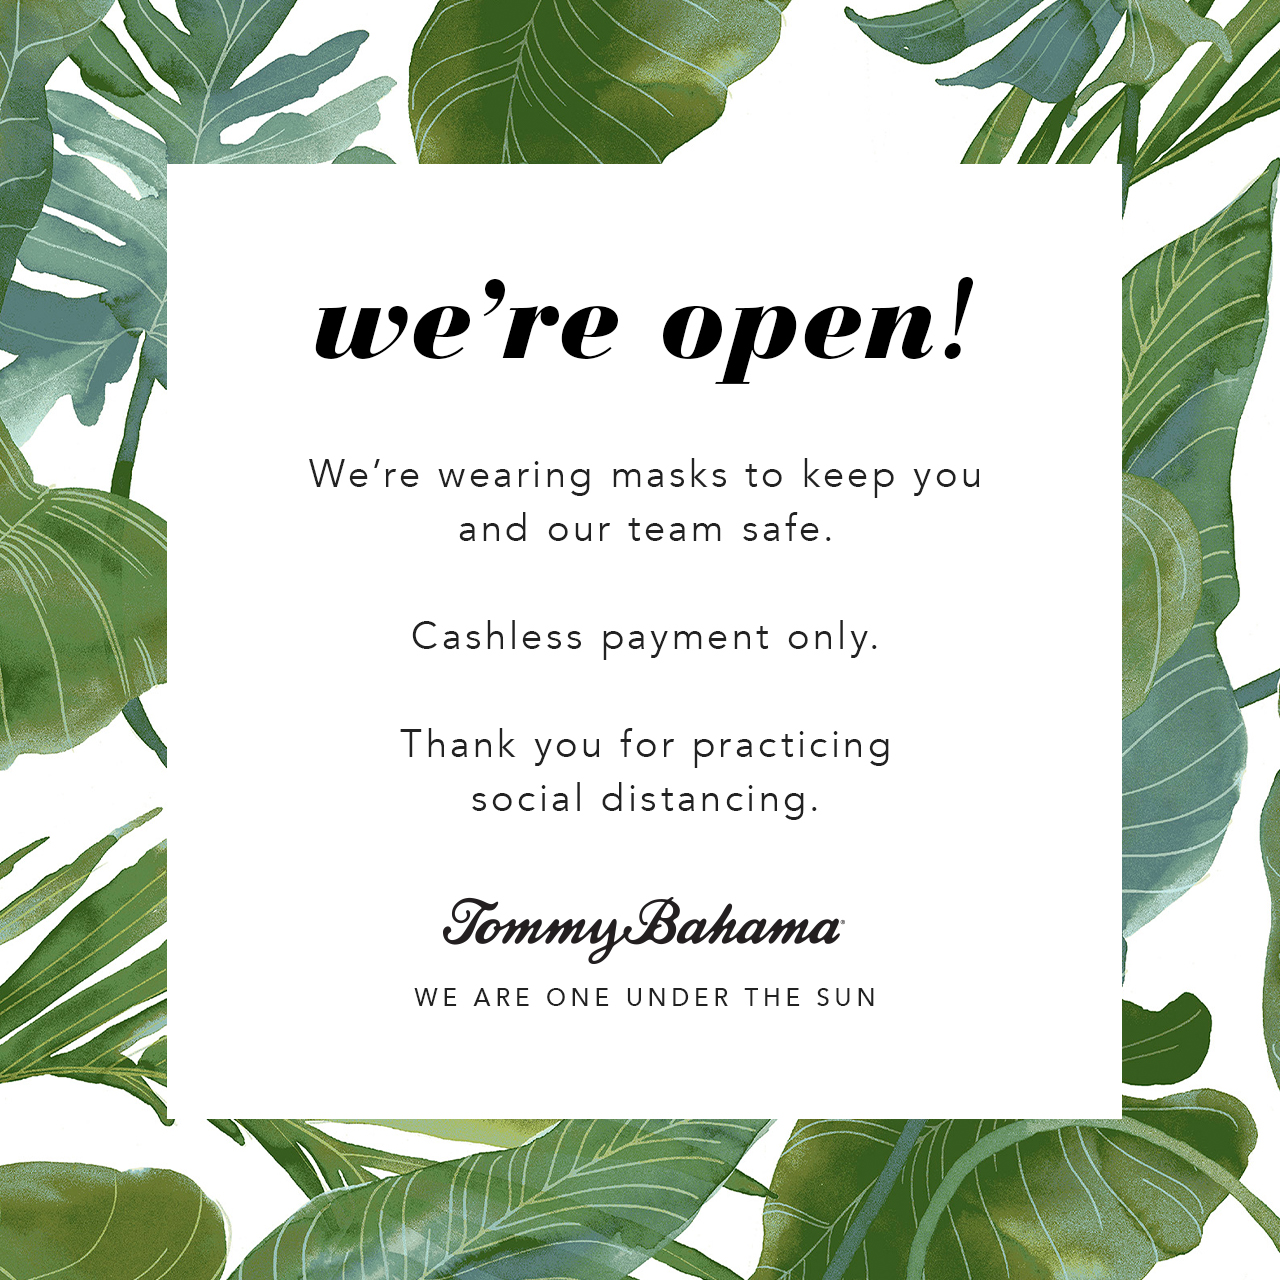 Tommy Bahama announcing their re-opening and practicing social distancing